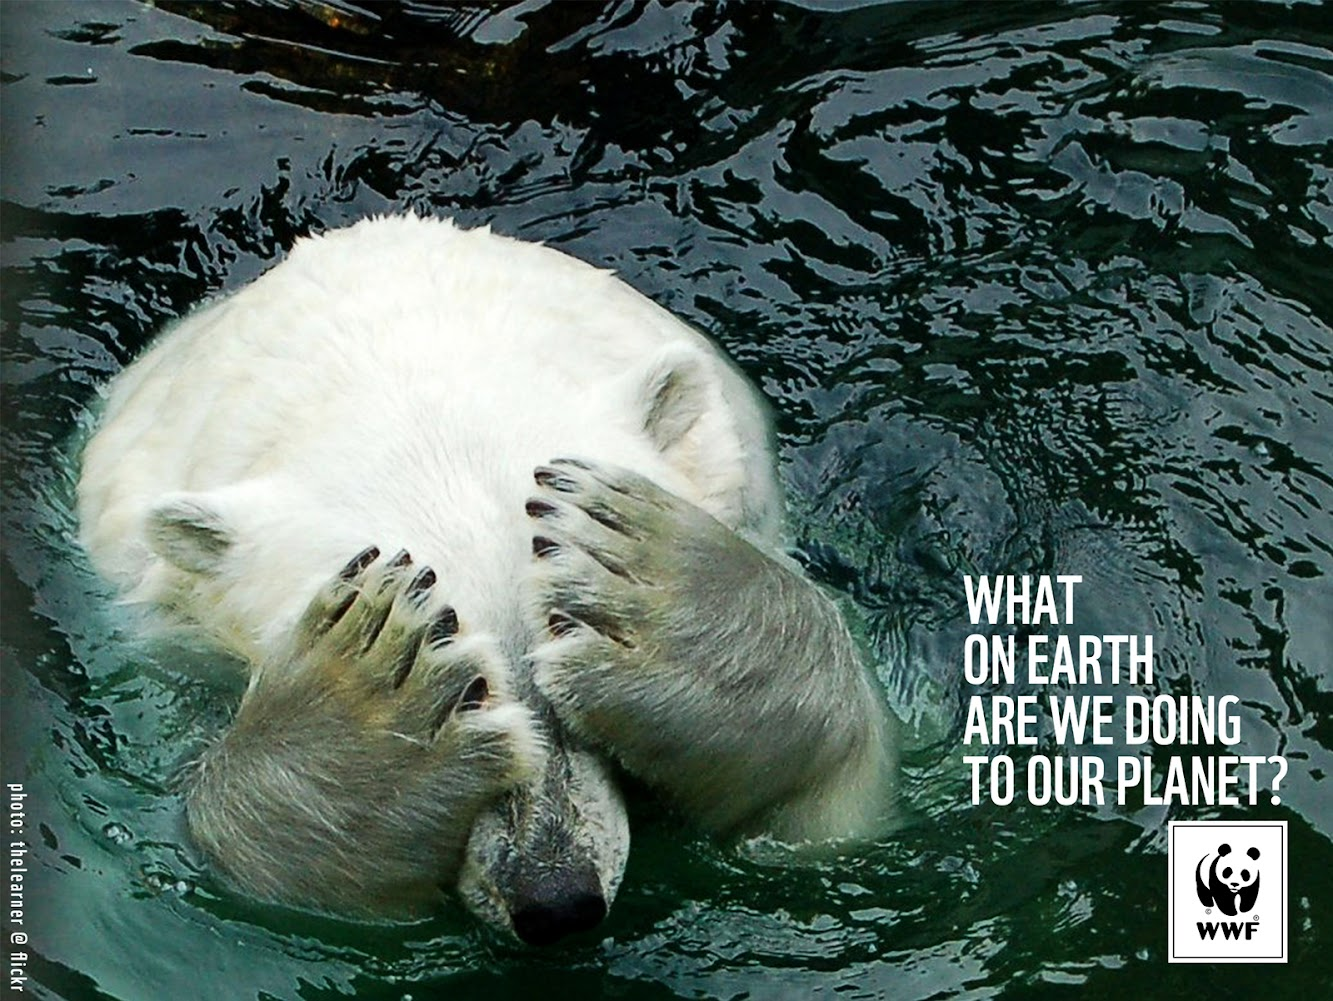 WWF — What On Earth Are We Doing To Our Planet?